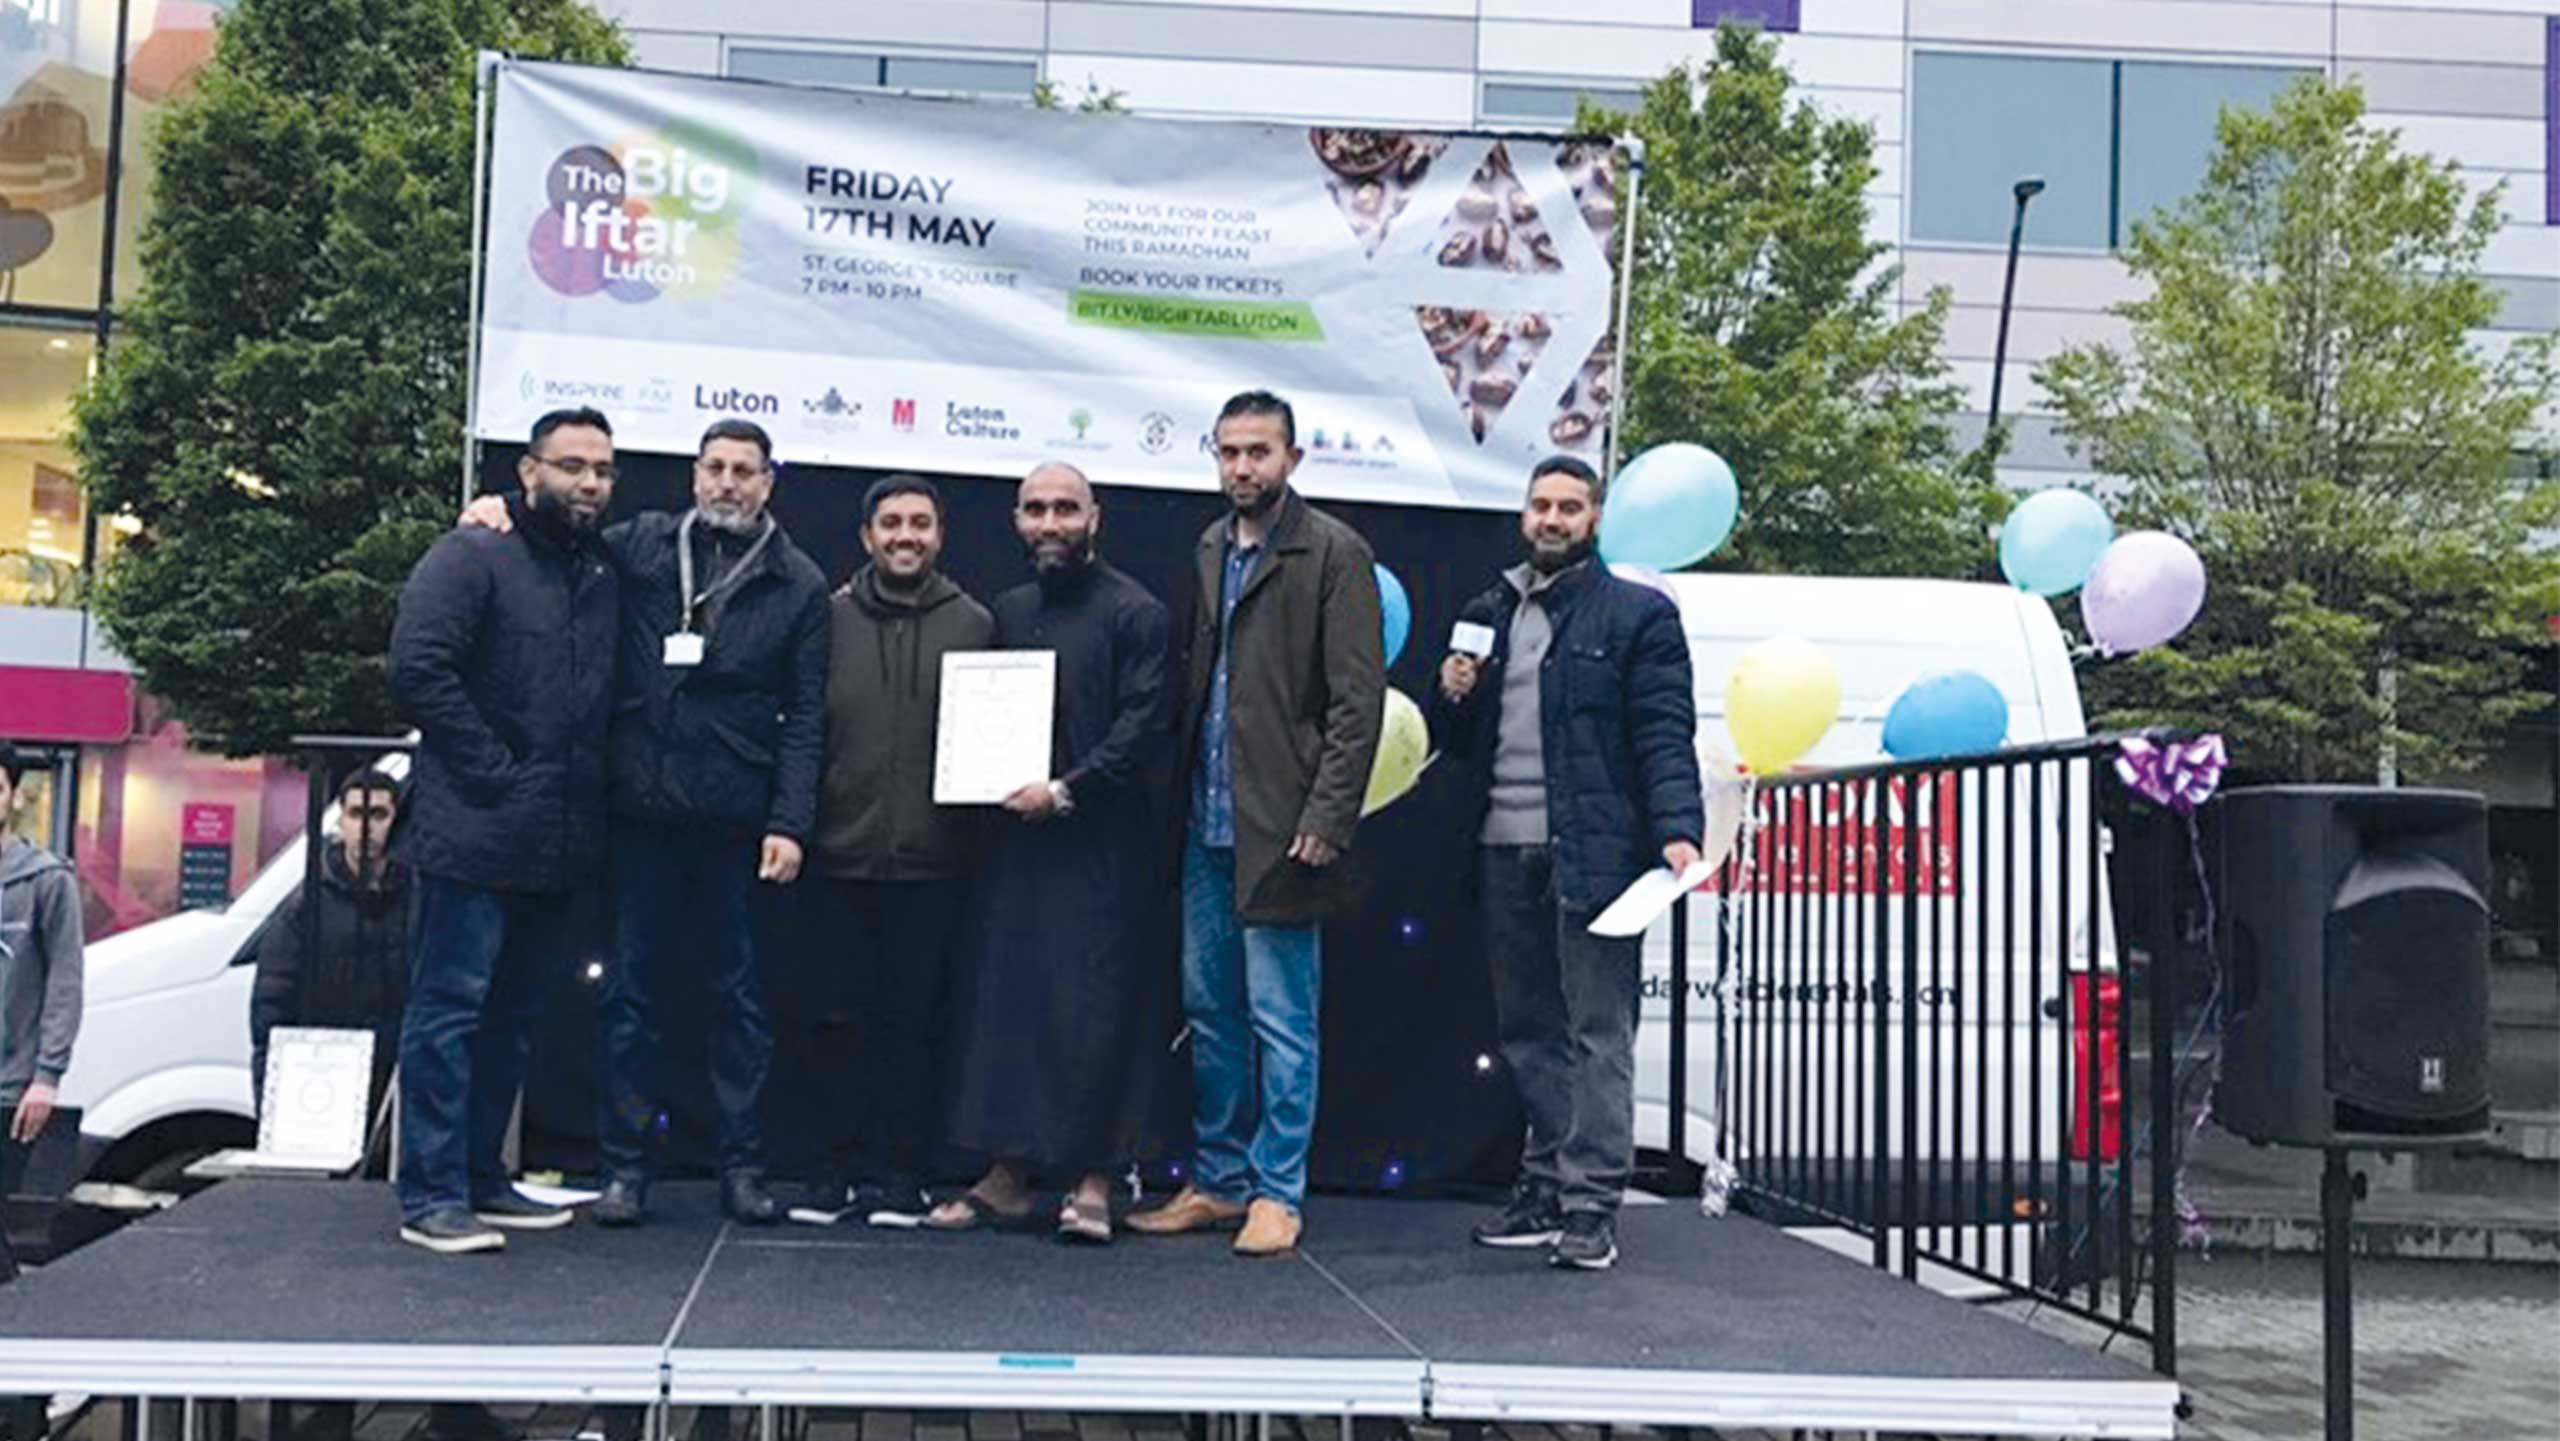 Team Luton being presented Making An Impact Award for the fundraising they did leading up to their Marathon run